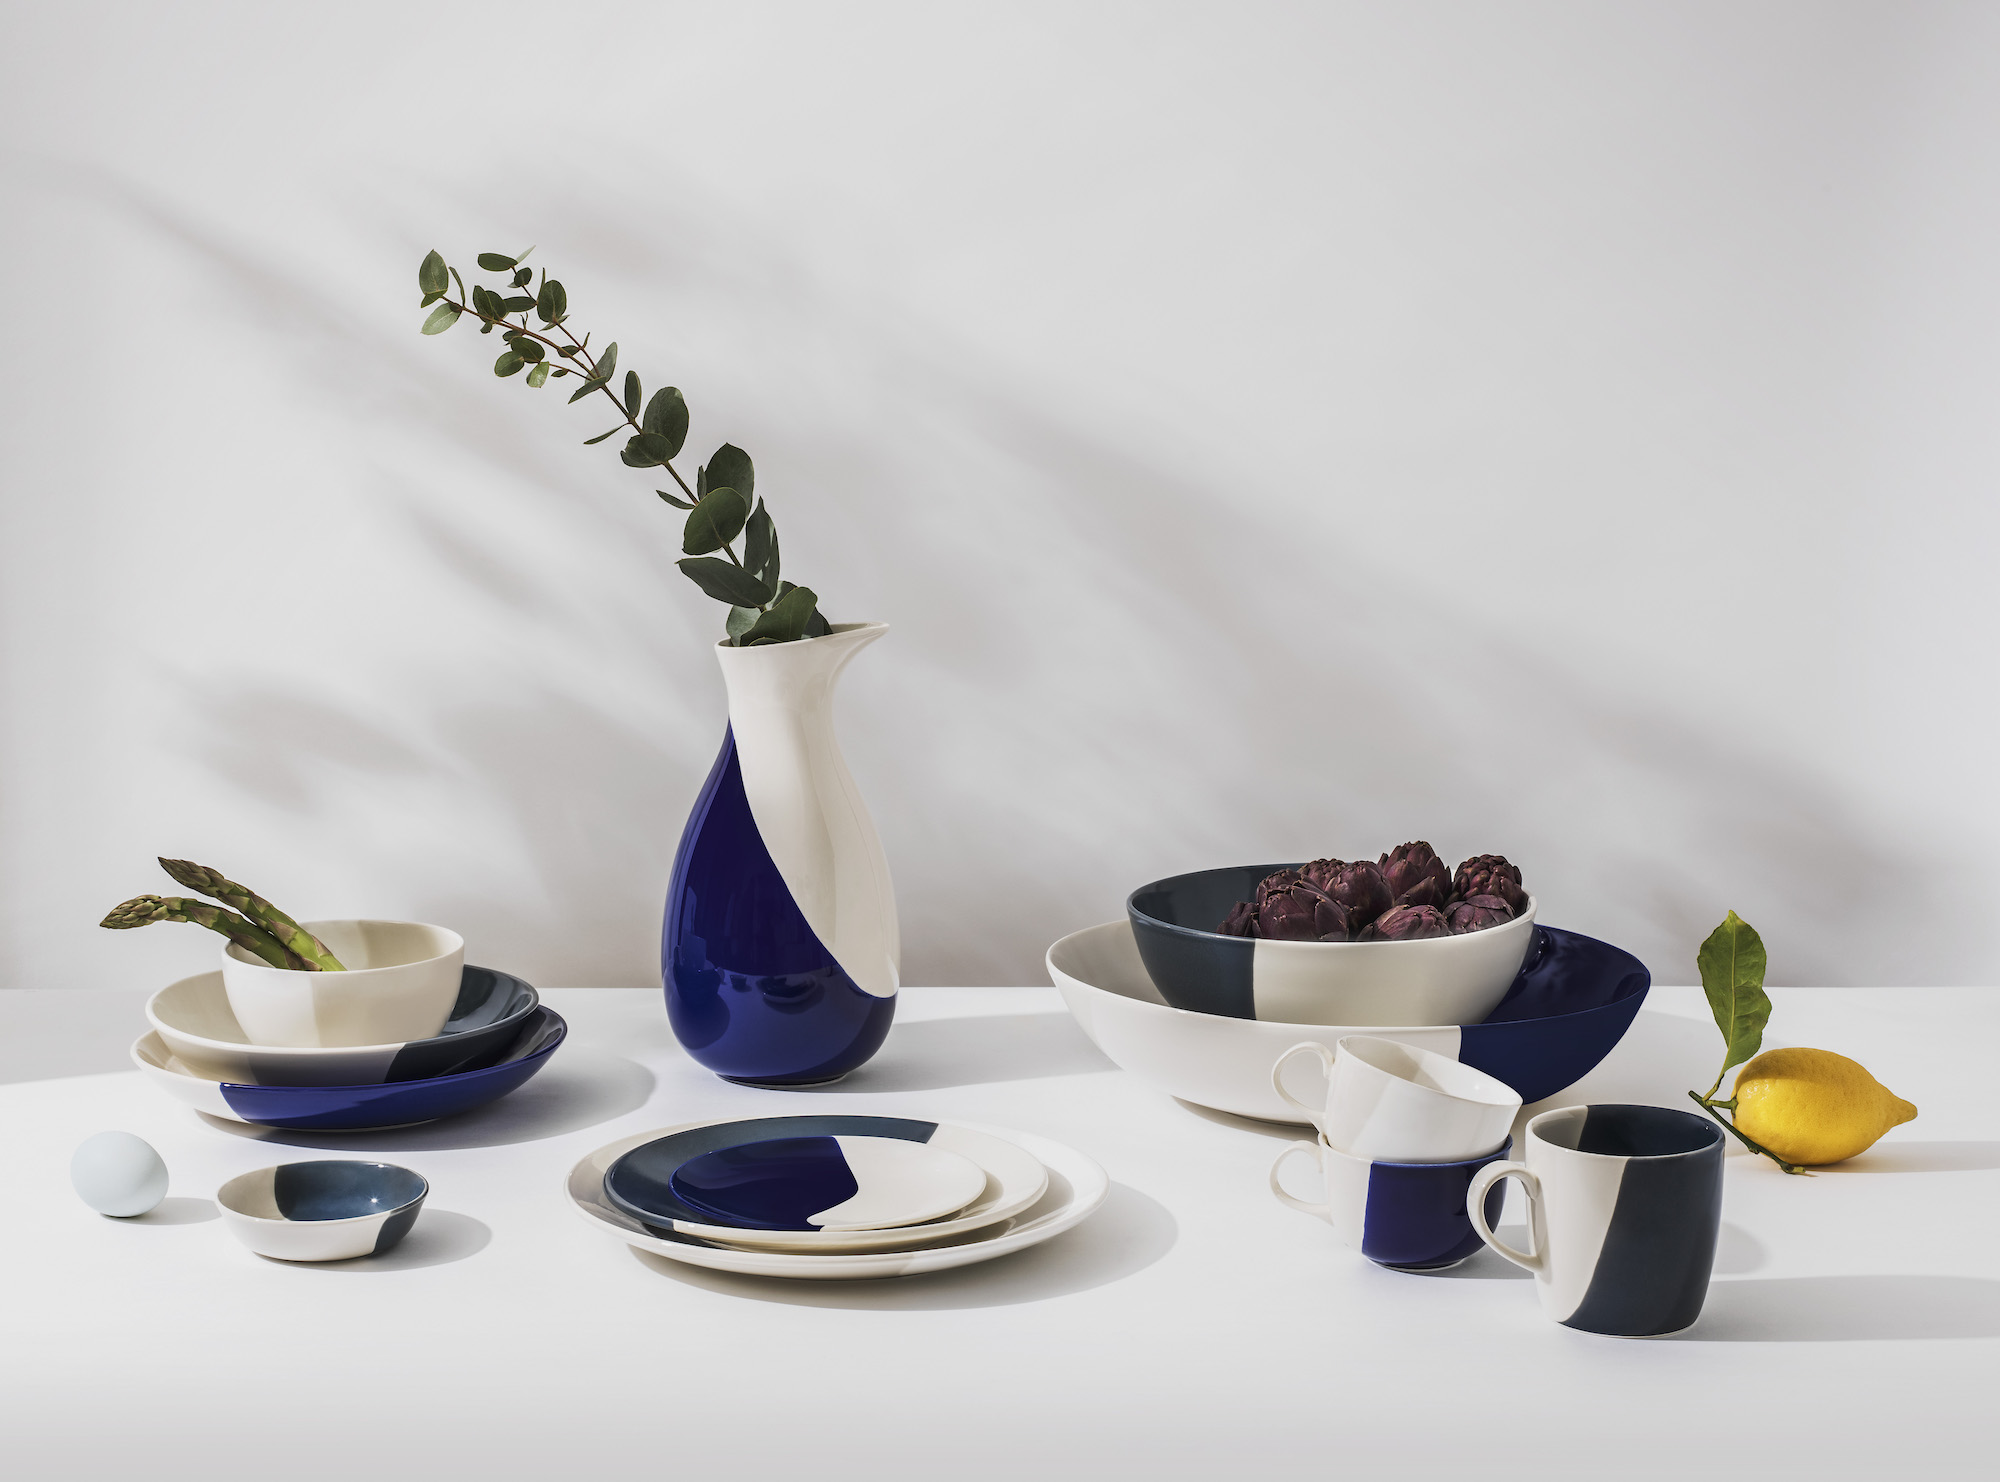 Designer Richard Brenson ceramics